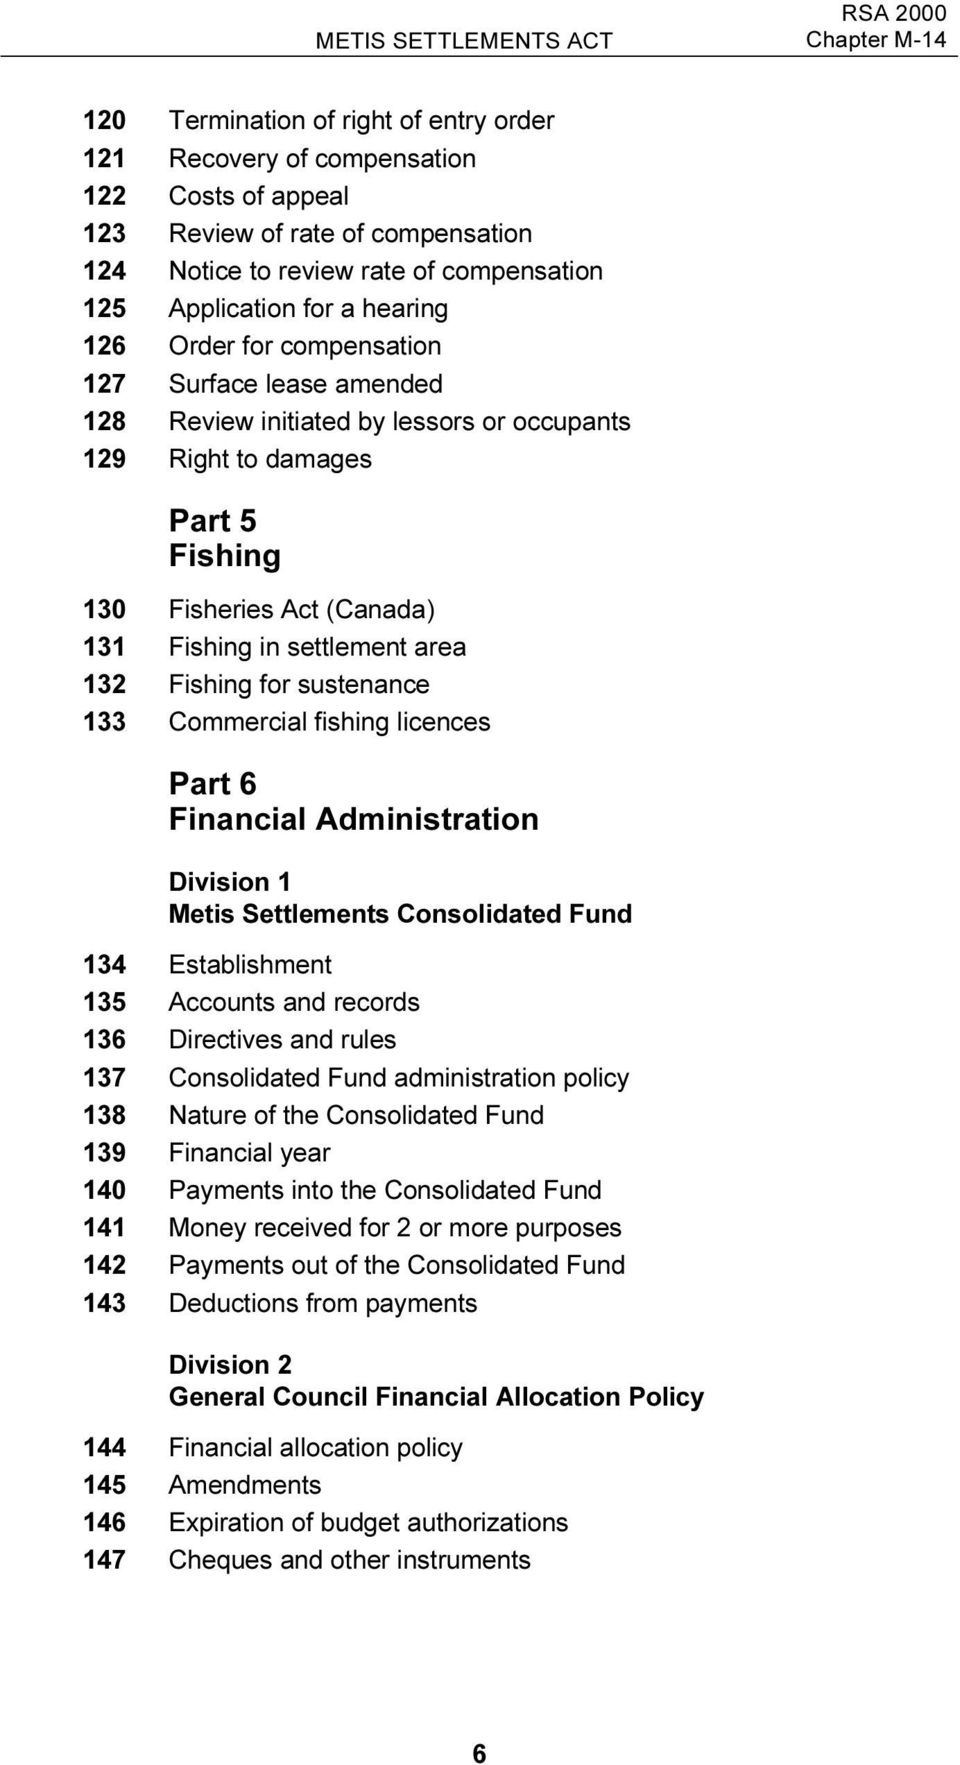 Fishing in settlement area 132 Fishing for sustenance 133 Commercial fishing licences Part 6 Financial Administration Division 1 Metis Settlements Consolidated Fund 134 Establishment 135 Accounts and